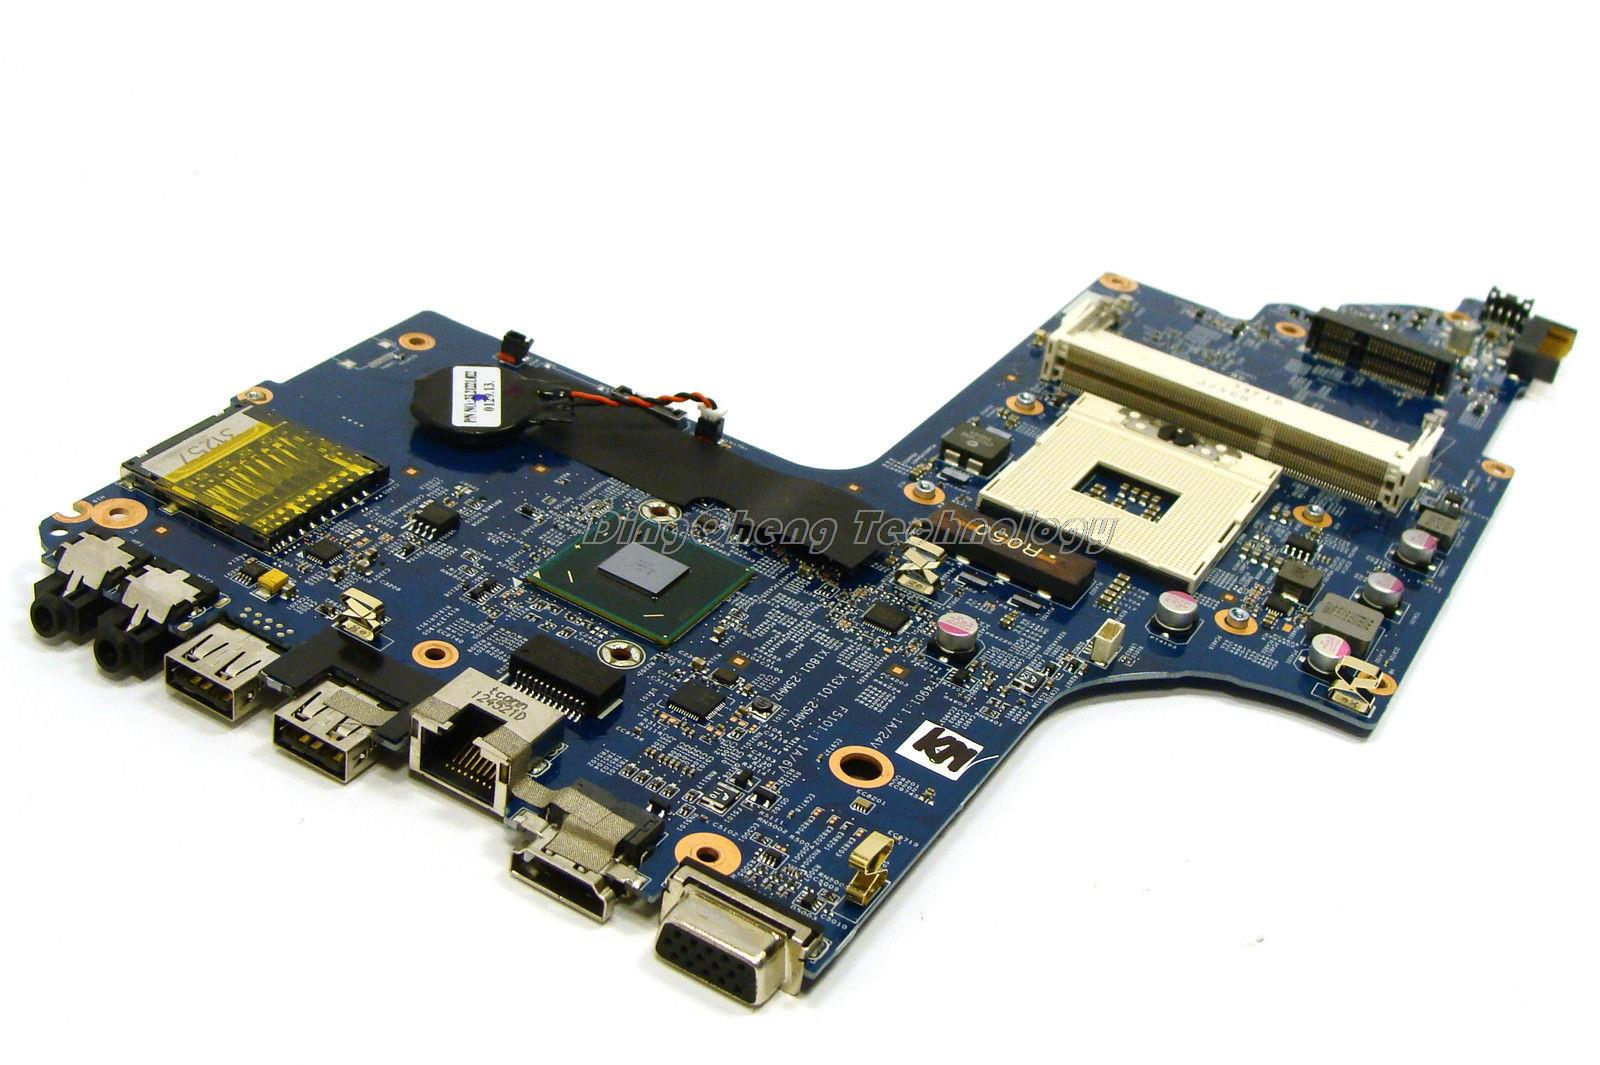 SHELI laptop Motherboard For hp DV6T-7000 DV6-7000 682177-001 HM77 DDR3 integrated graphics card